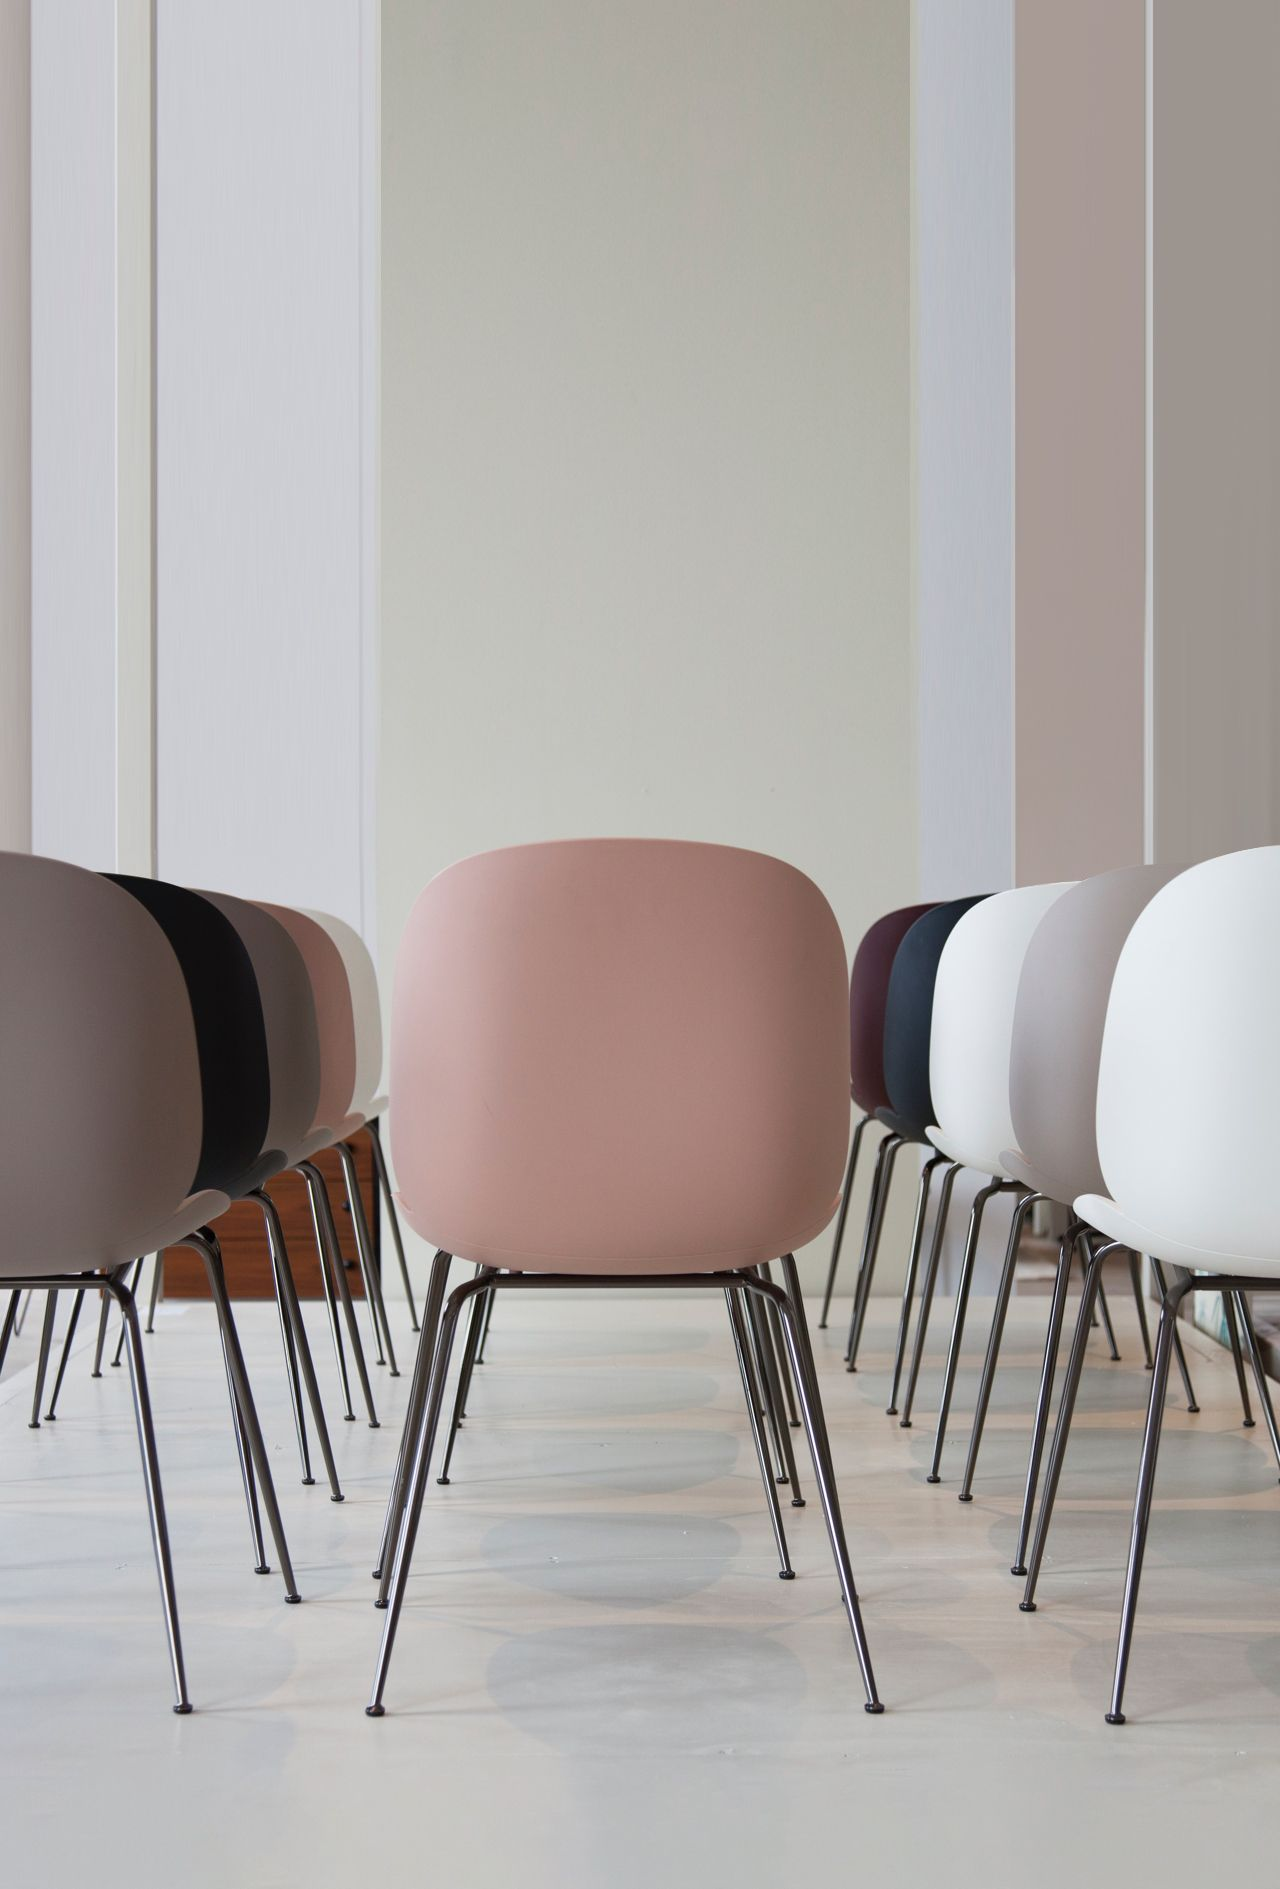 Buy The Gubi Beetle Dining Chair In 2020 Gubi Beetle Dining Chair Dining Chairs Chair